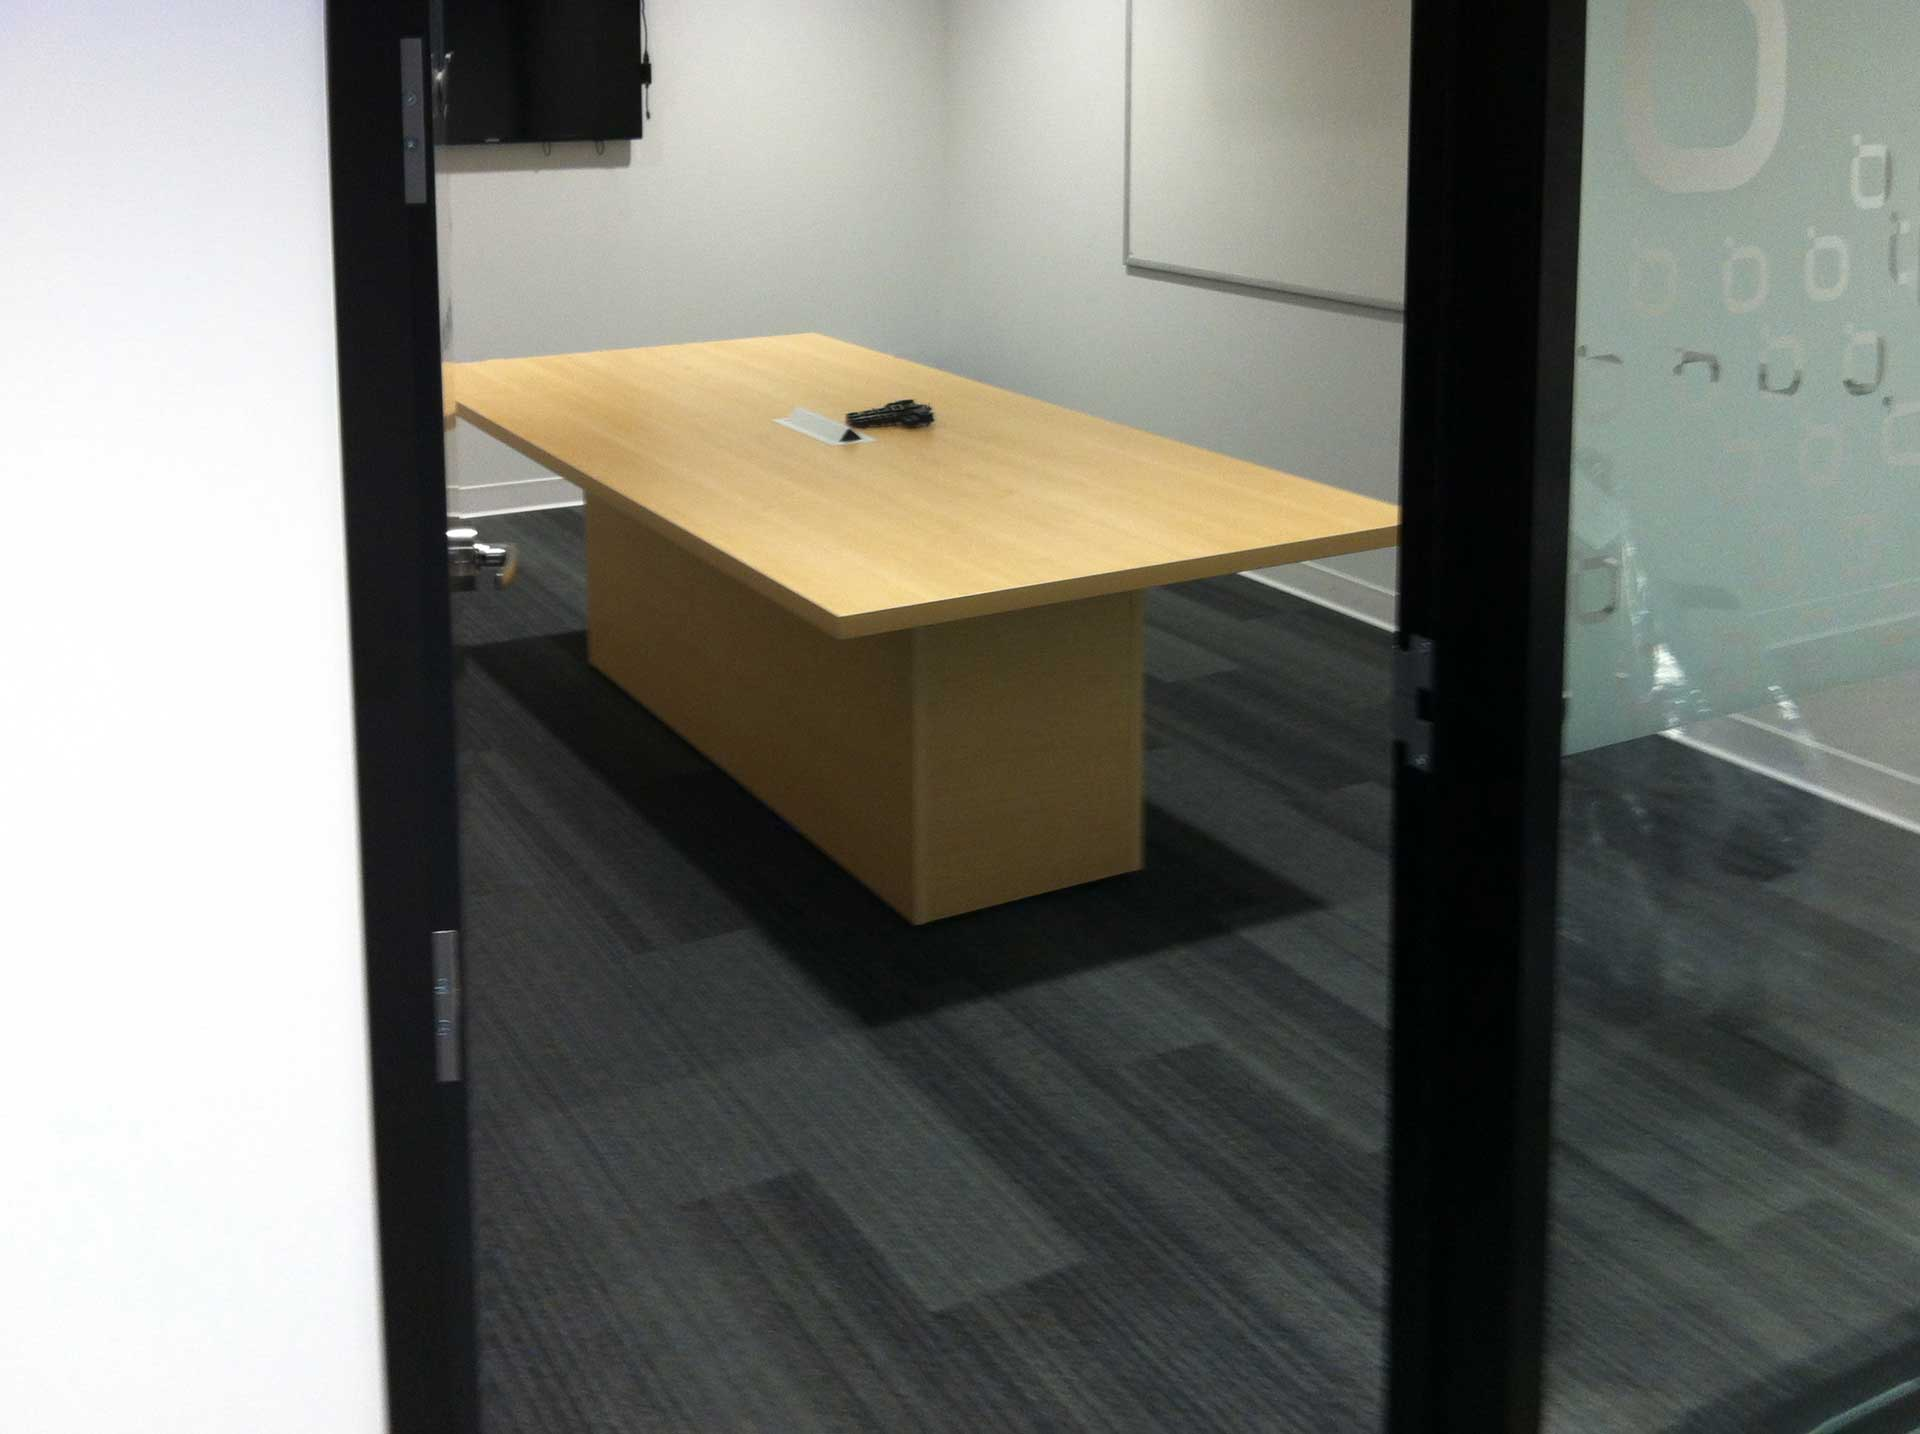 Meeting Table with box behind the glass wall